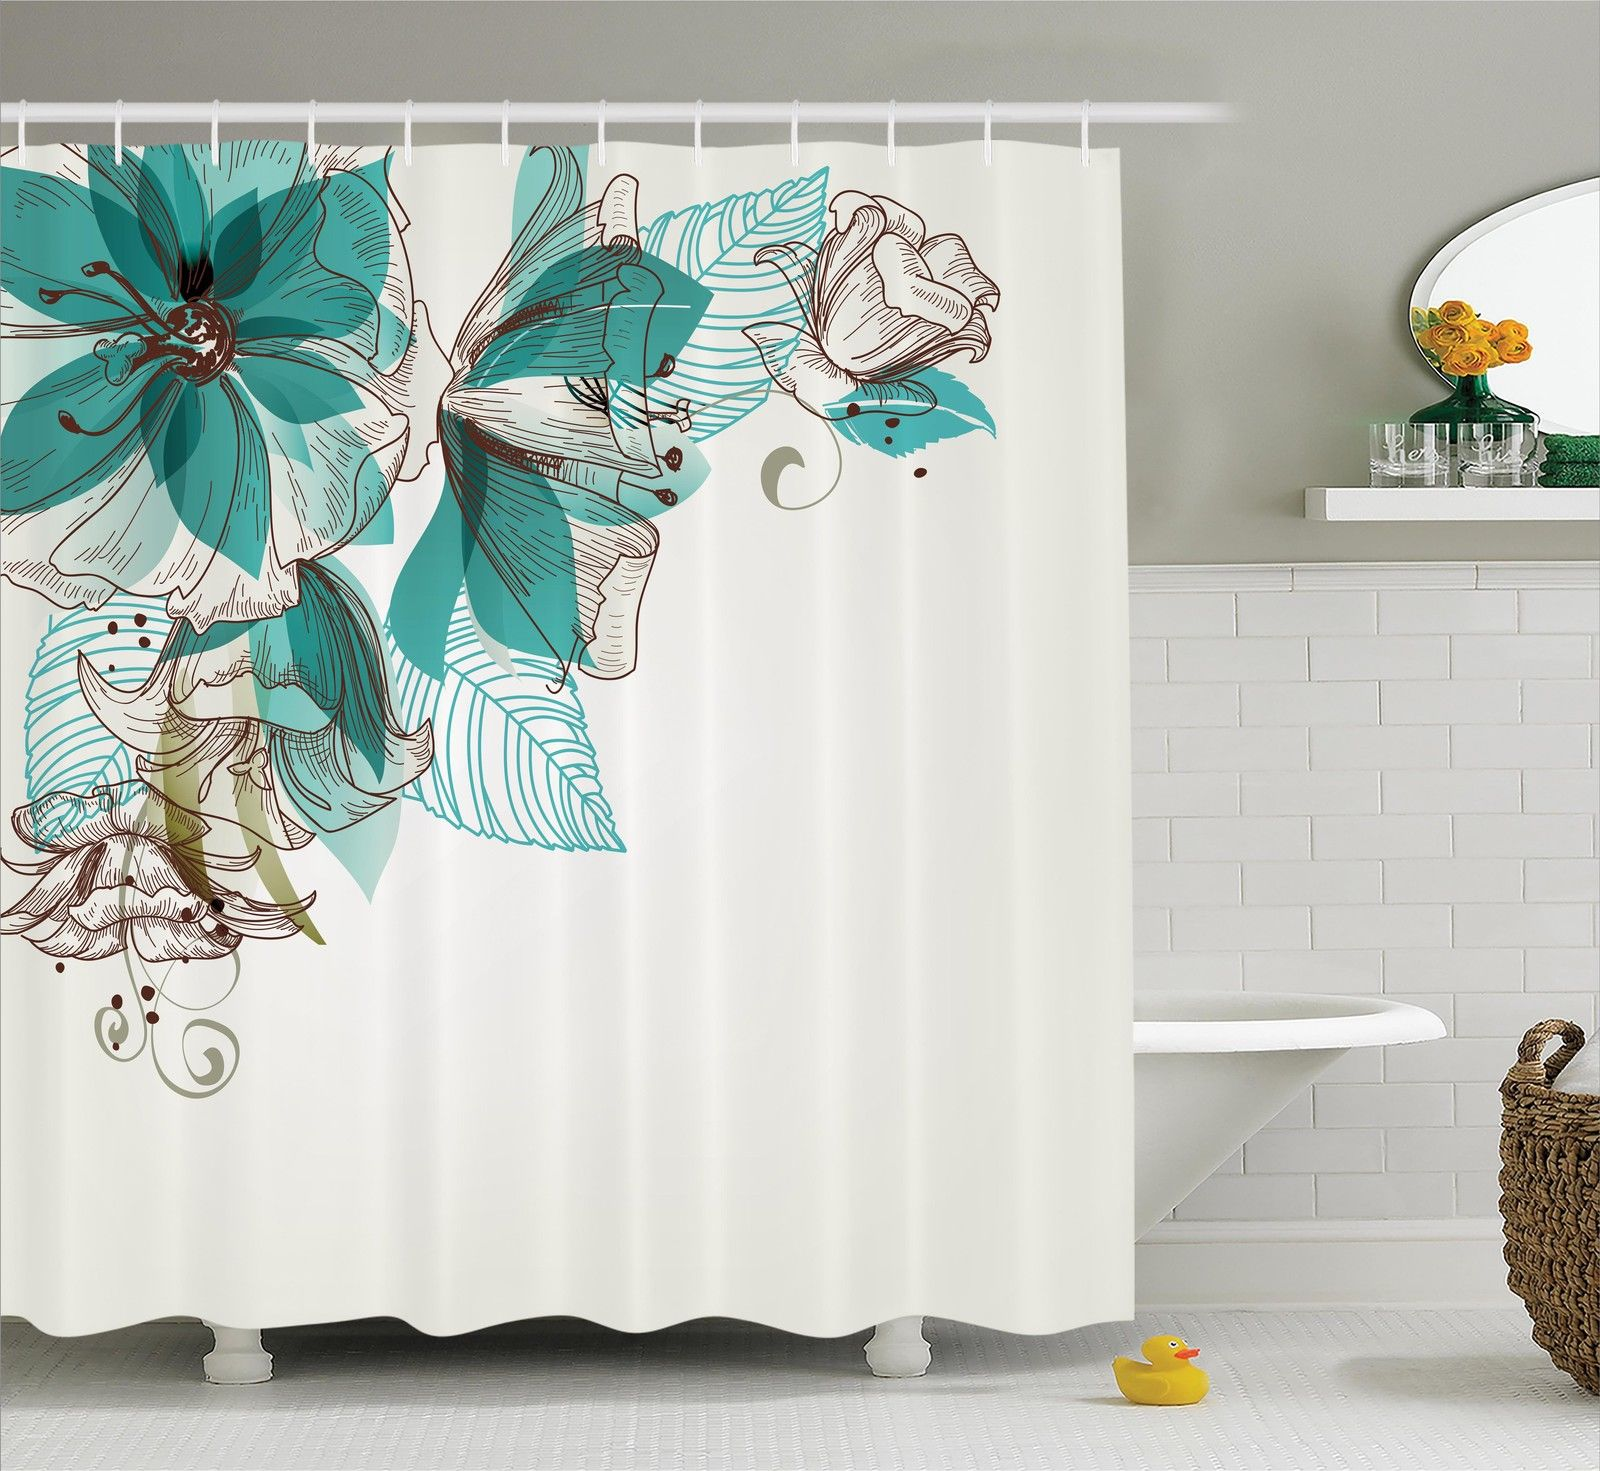 Shower Curtains At Kohls Flowers Buds